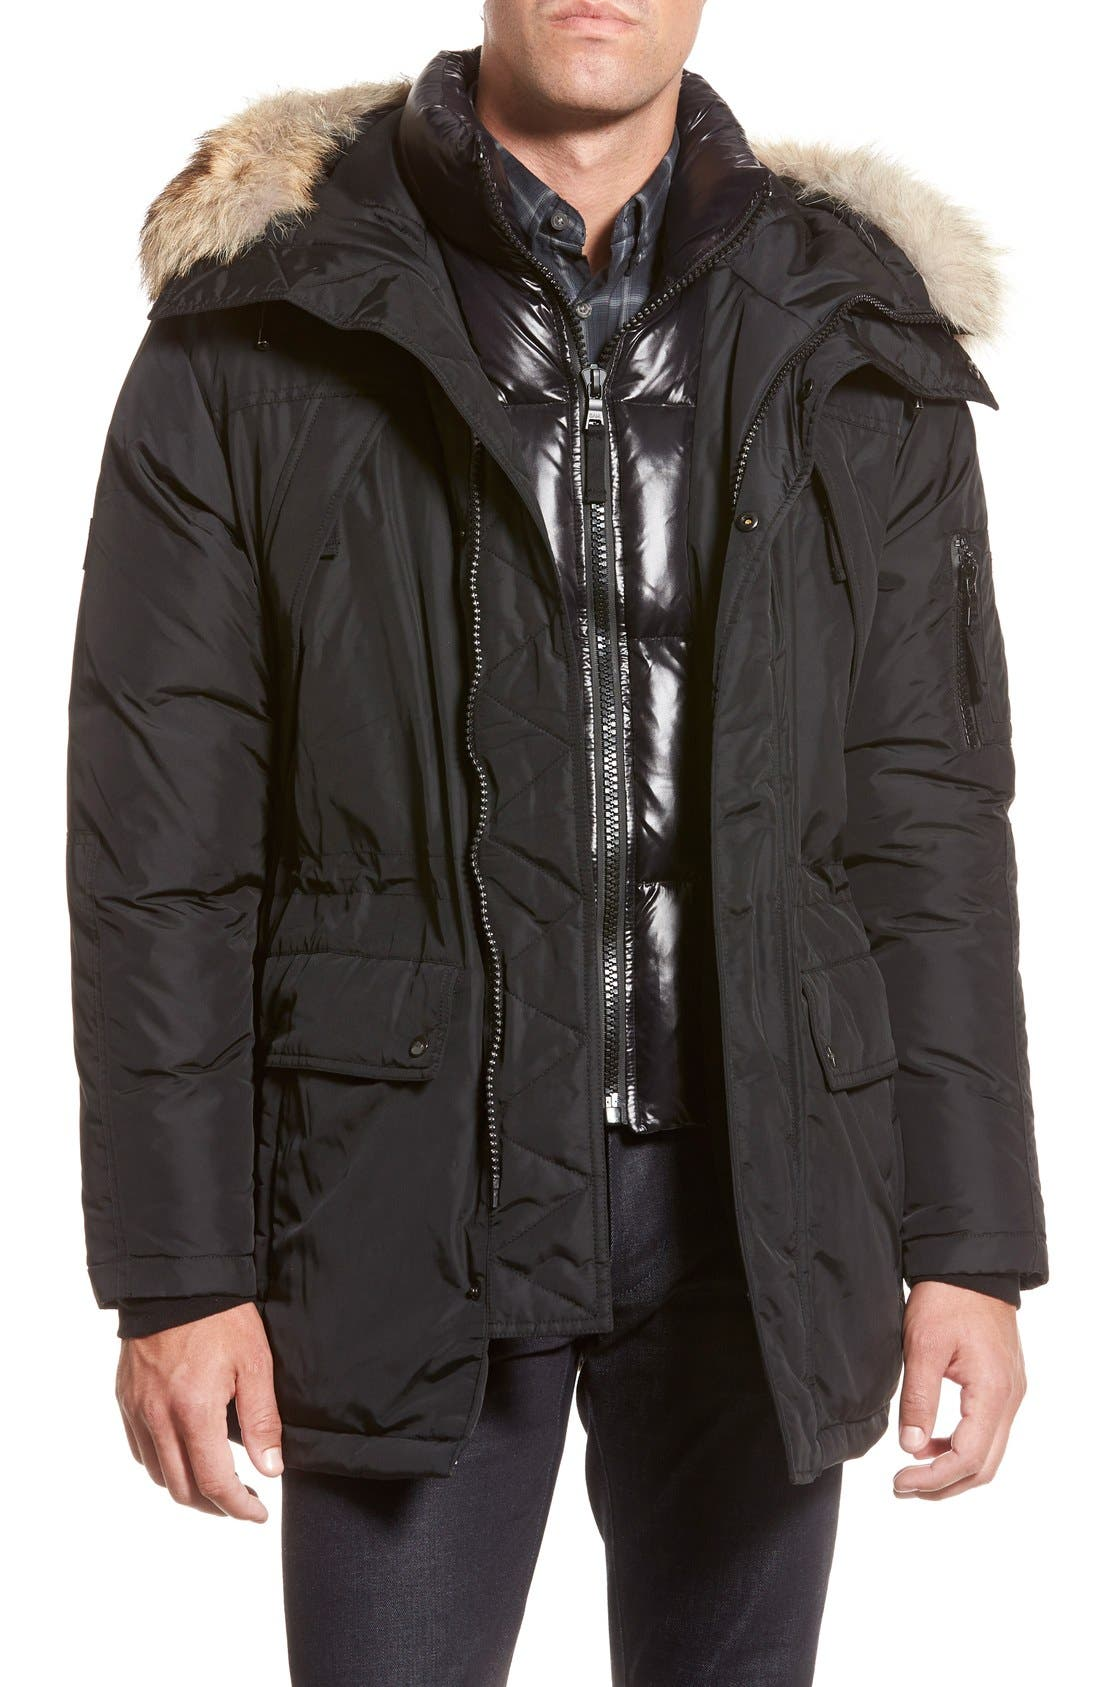 'Avalanche' Quilted Jacket with Genuine Coyote Fur Trim,                             Main thumbnail 1, color,                             001